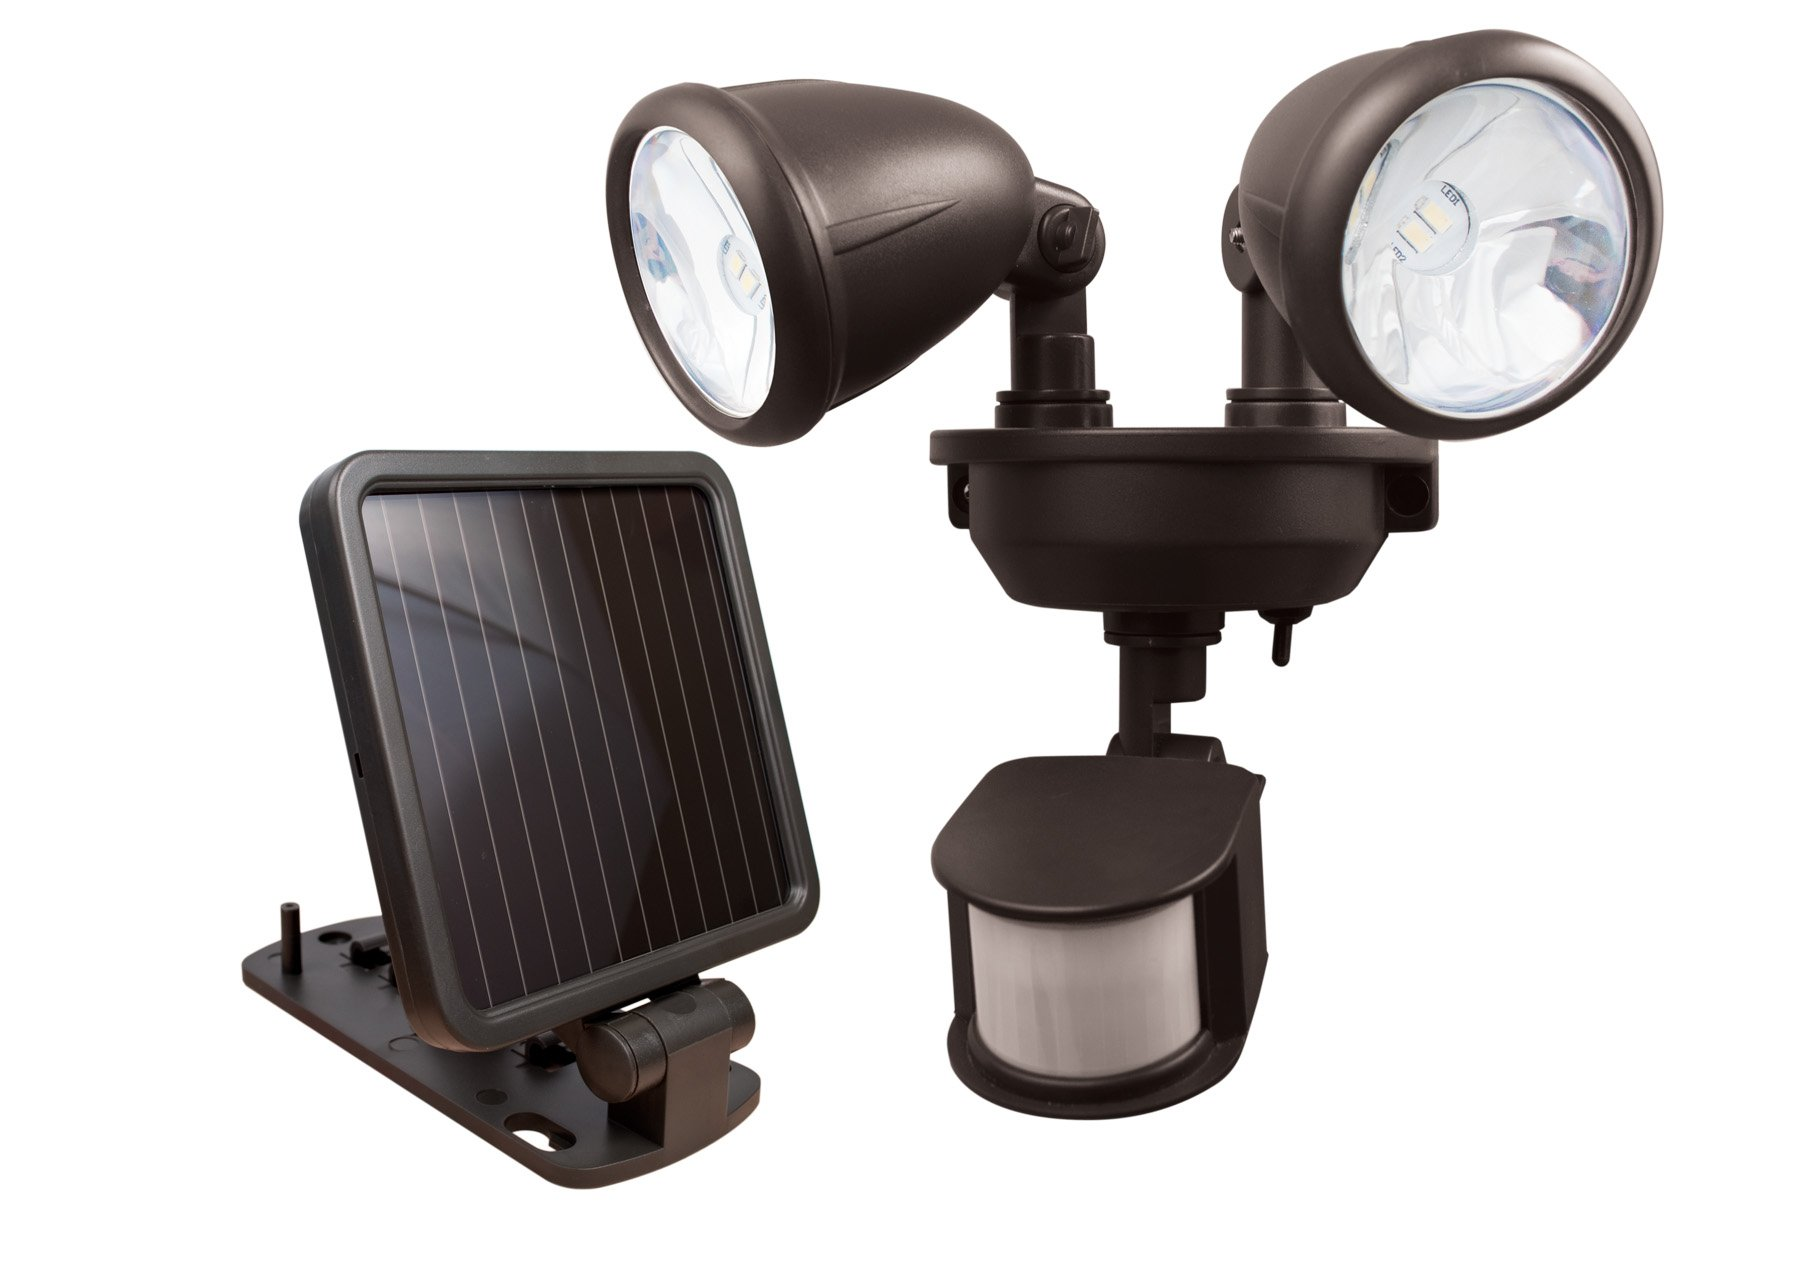 MAXSA Solar-Powered LED Dual-Head Motion Activated Security Lights for Porches, Sheds, Patios, & Barns, Dark Bronze 44216